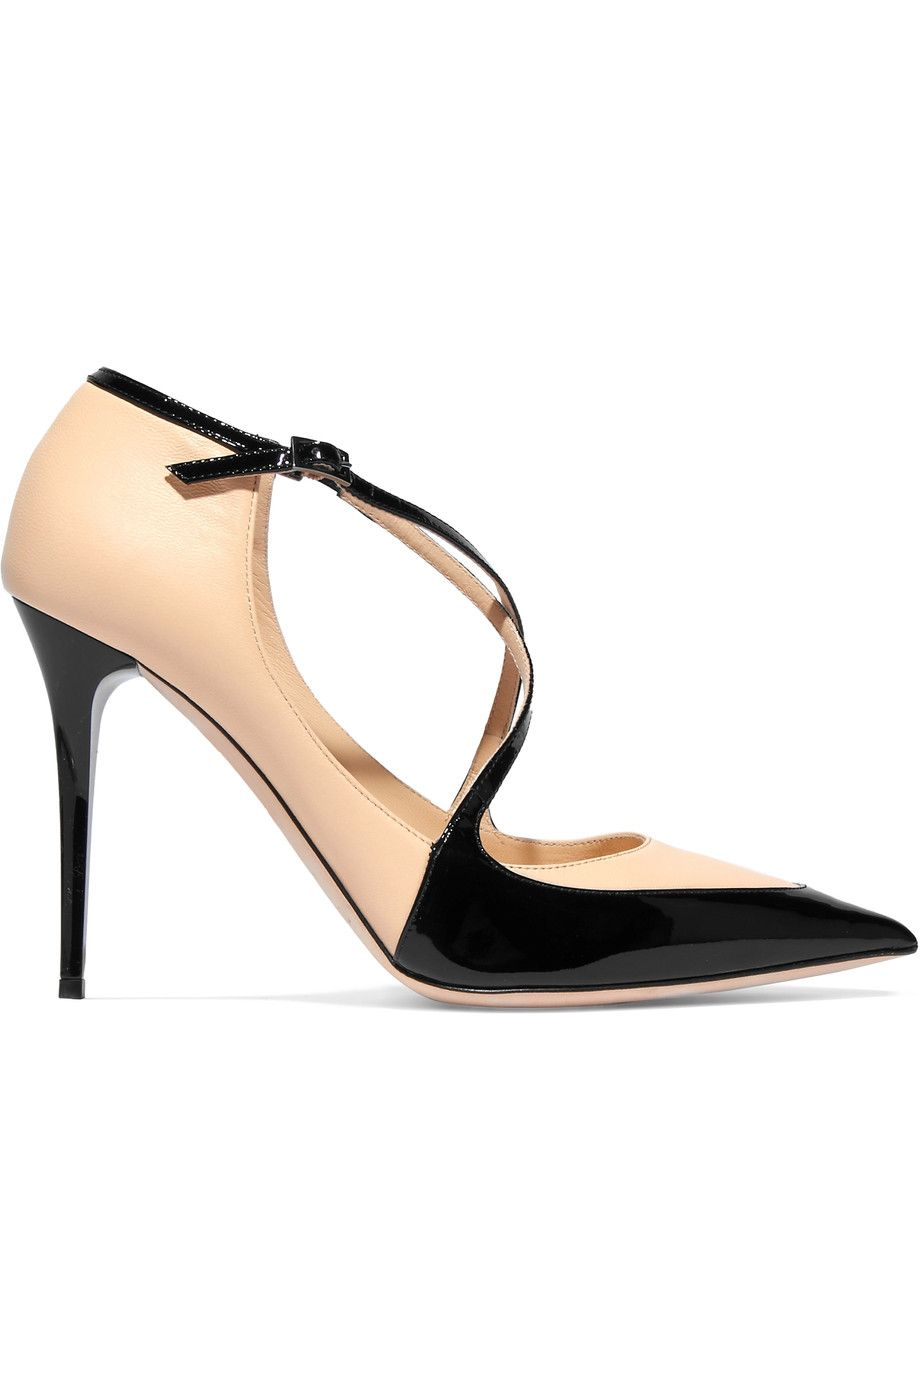 perfect online enjoy online Jimmy Choo Two-Tone Pointed-Toe Pumps 2014 new for sale buy cheap from china collections for sale 0a52FvW5XO